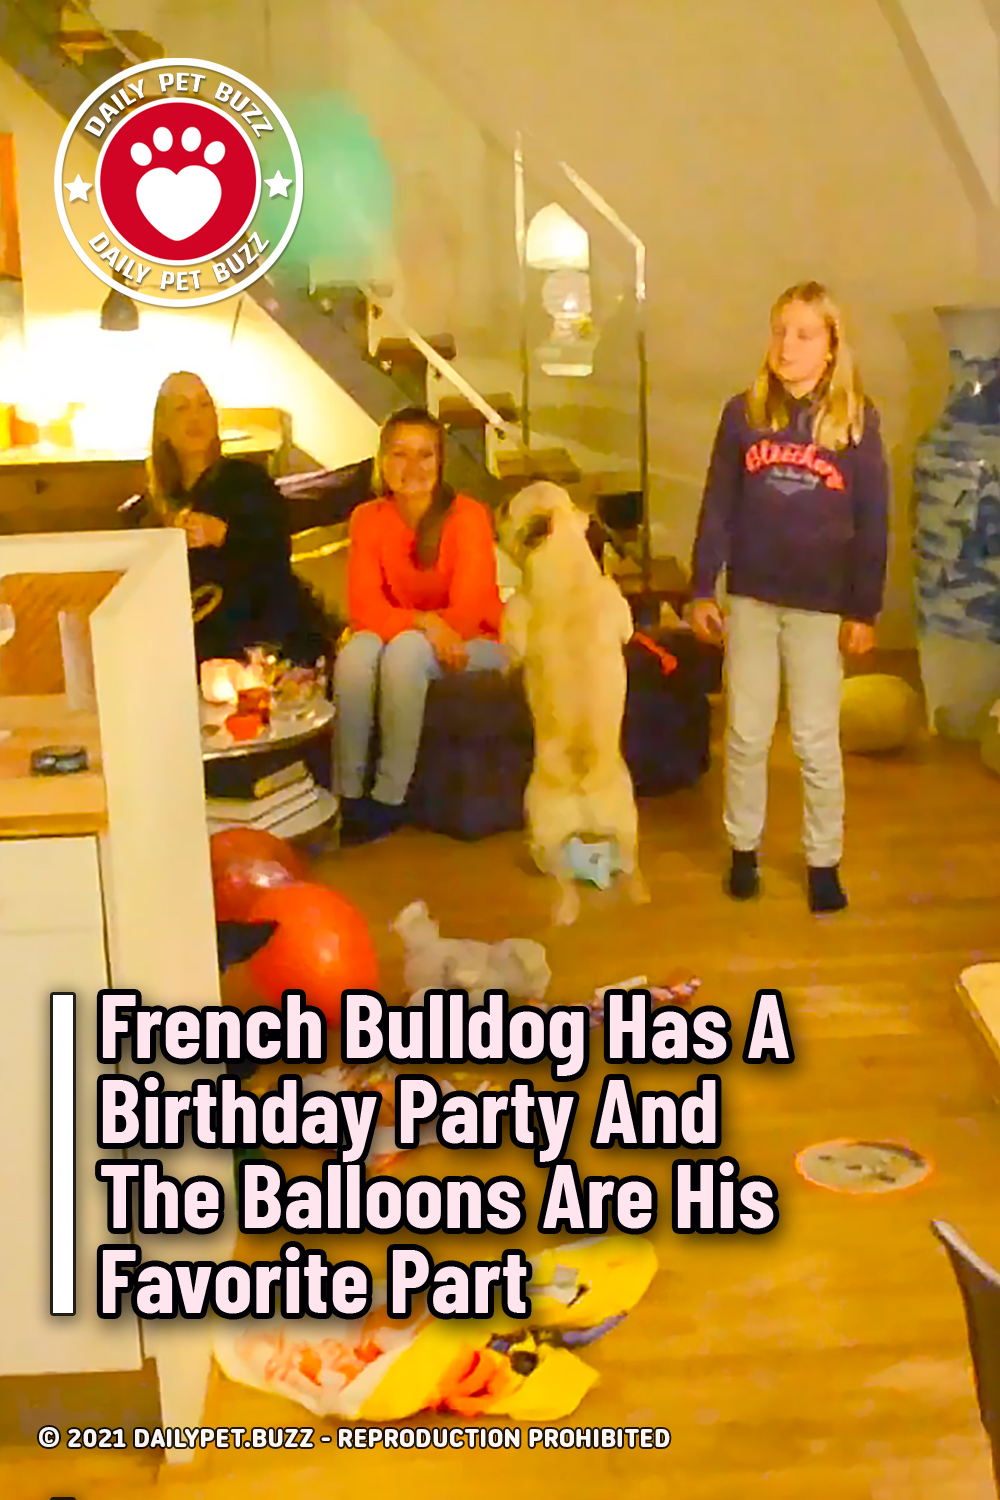 French Bulldog Has A Birthday Party And The Balloons Are His Favorite Part